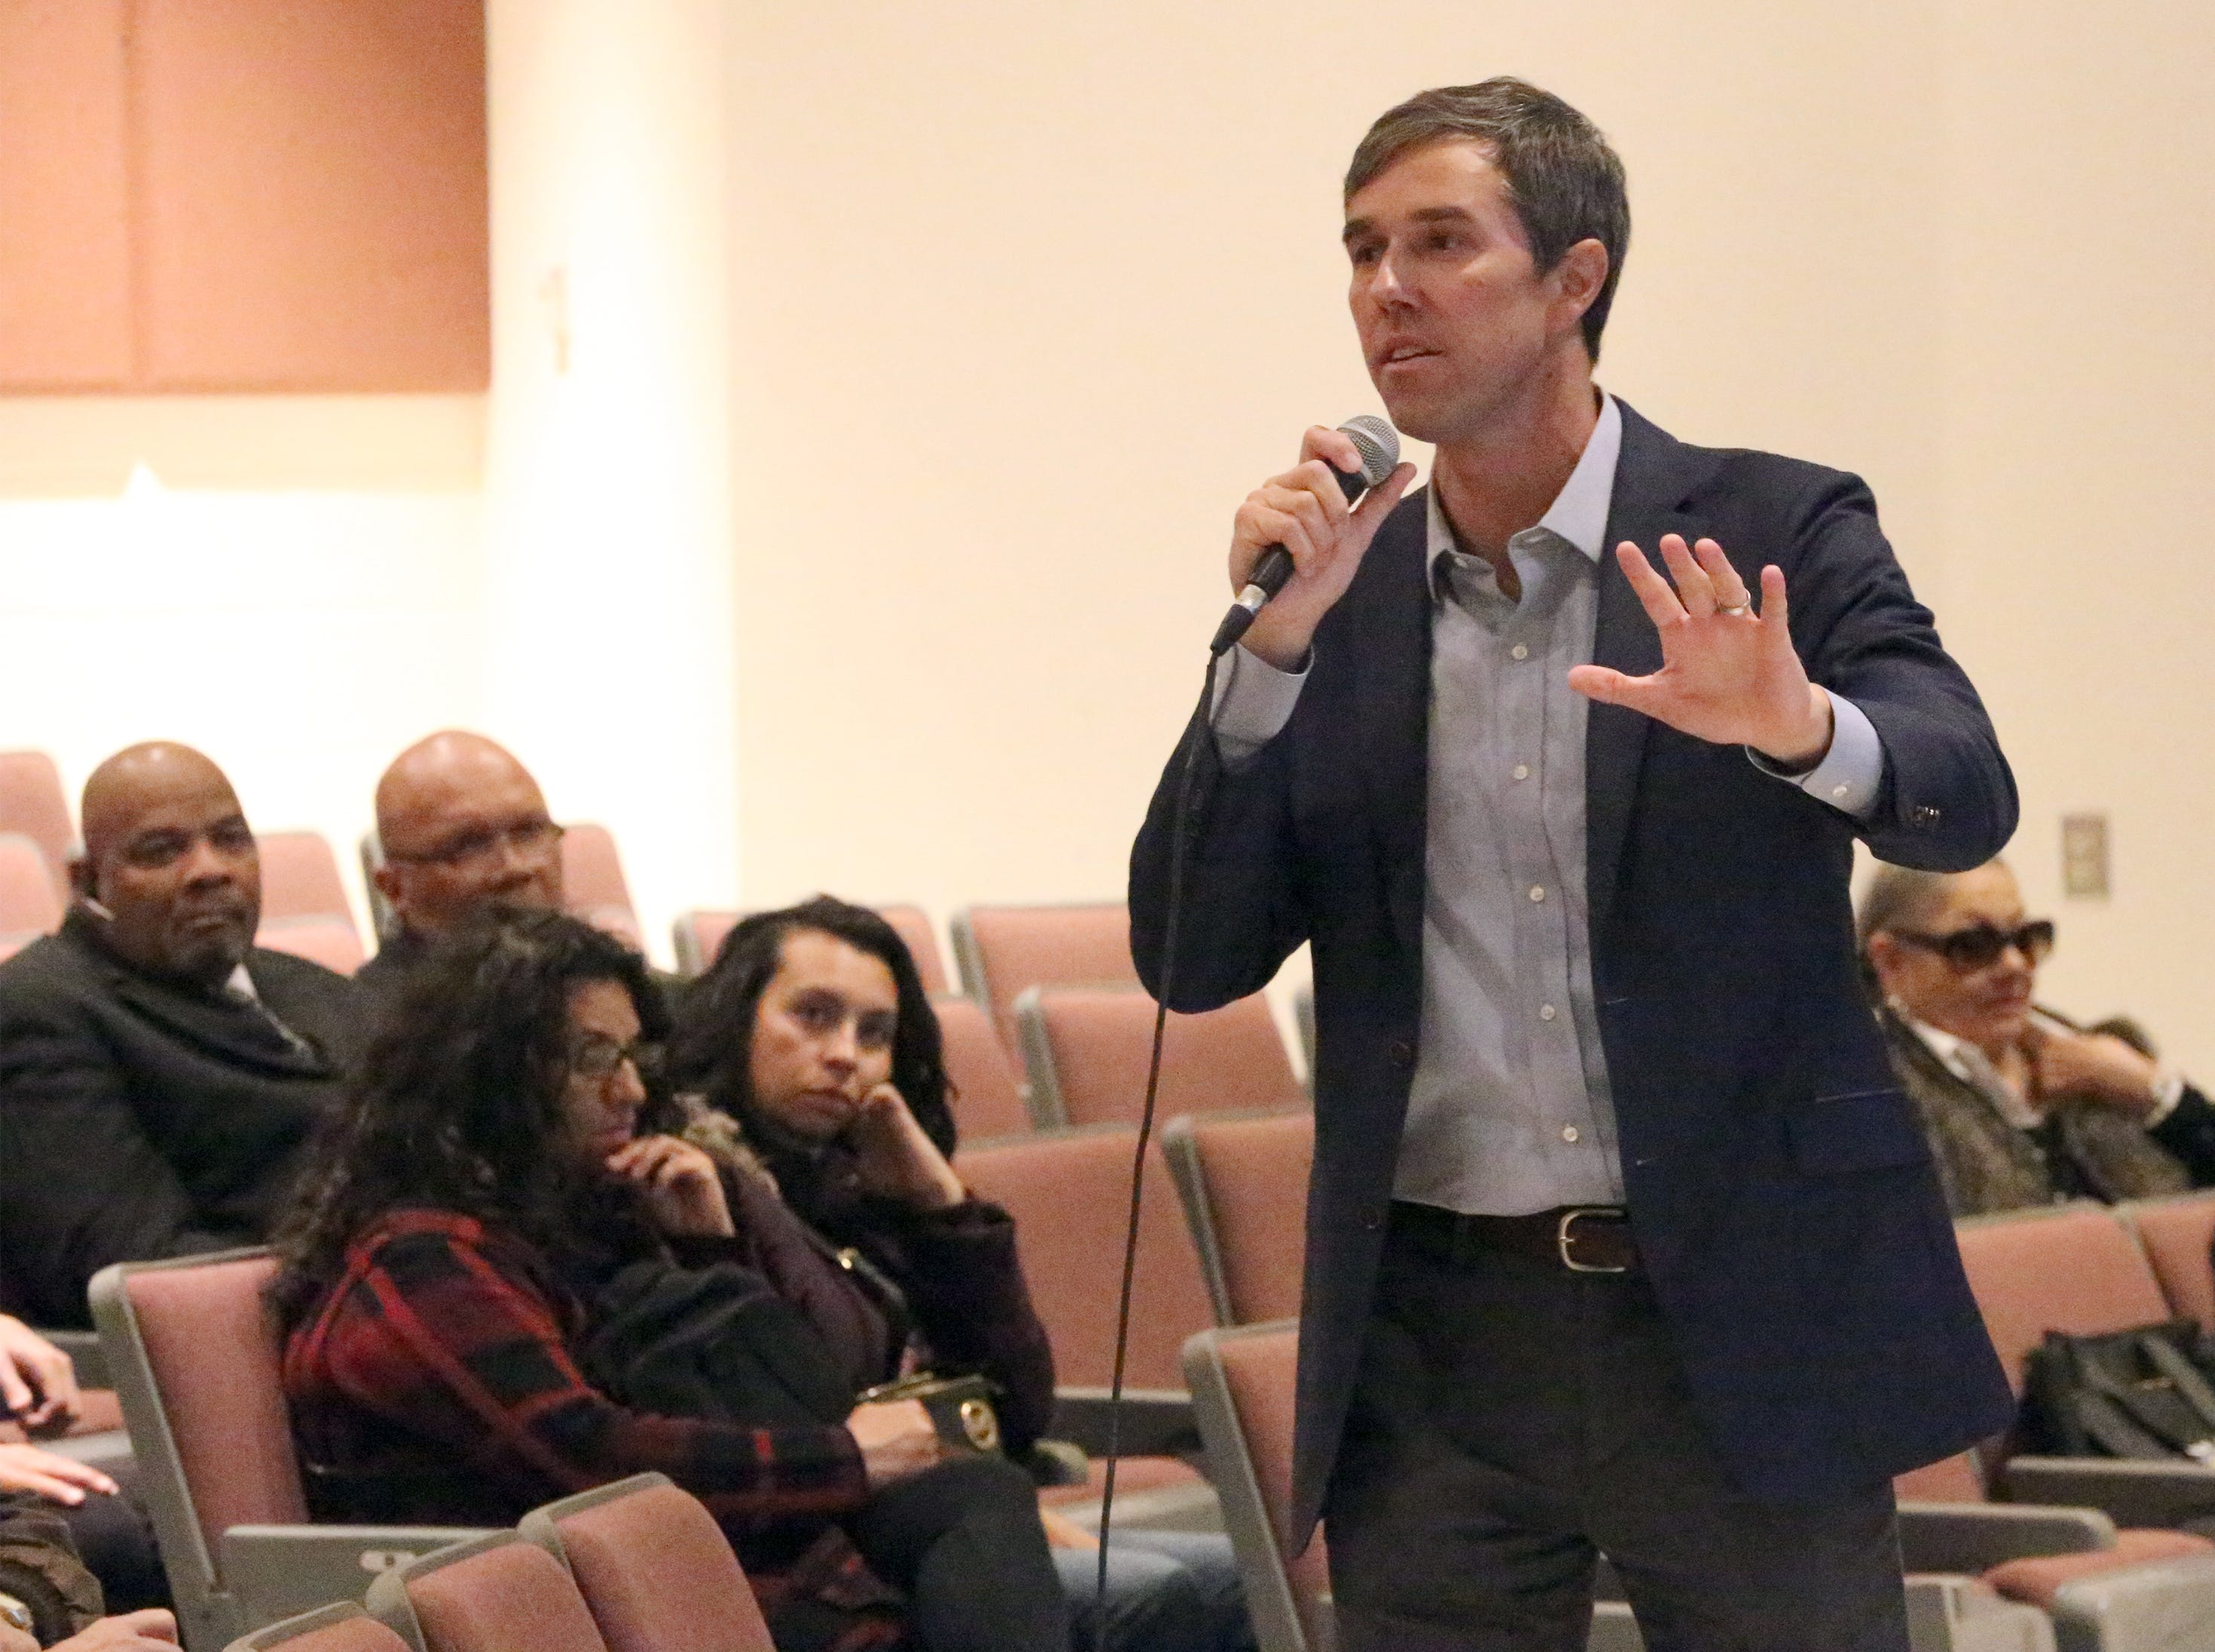 Beto O'Rourke hosted his final town halls at Chapin High School and visited a migrant shelter in Juarez Friday